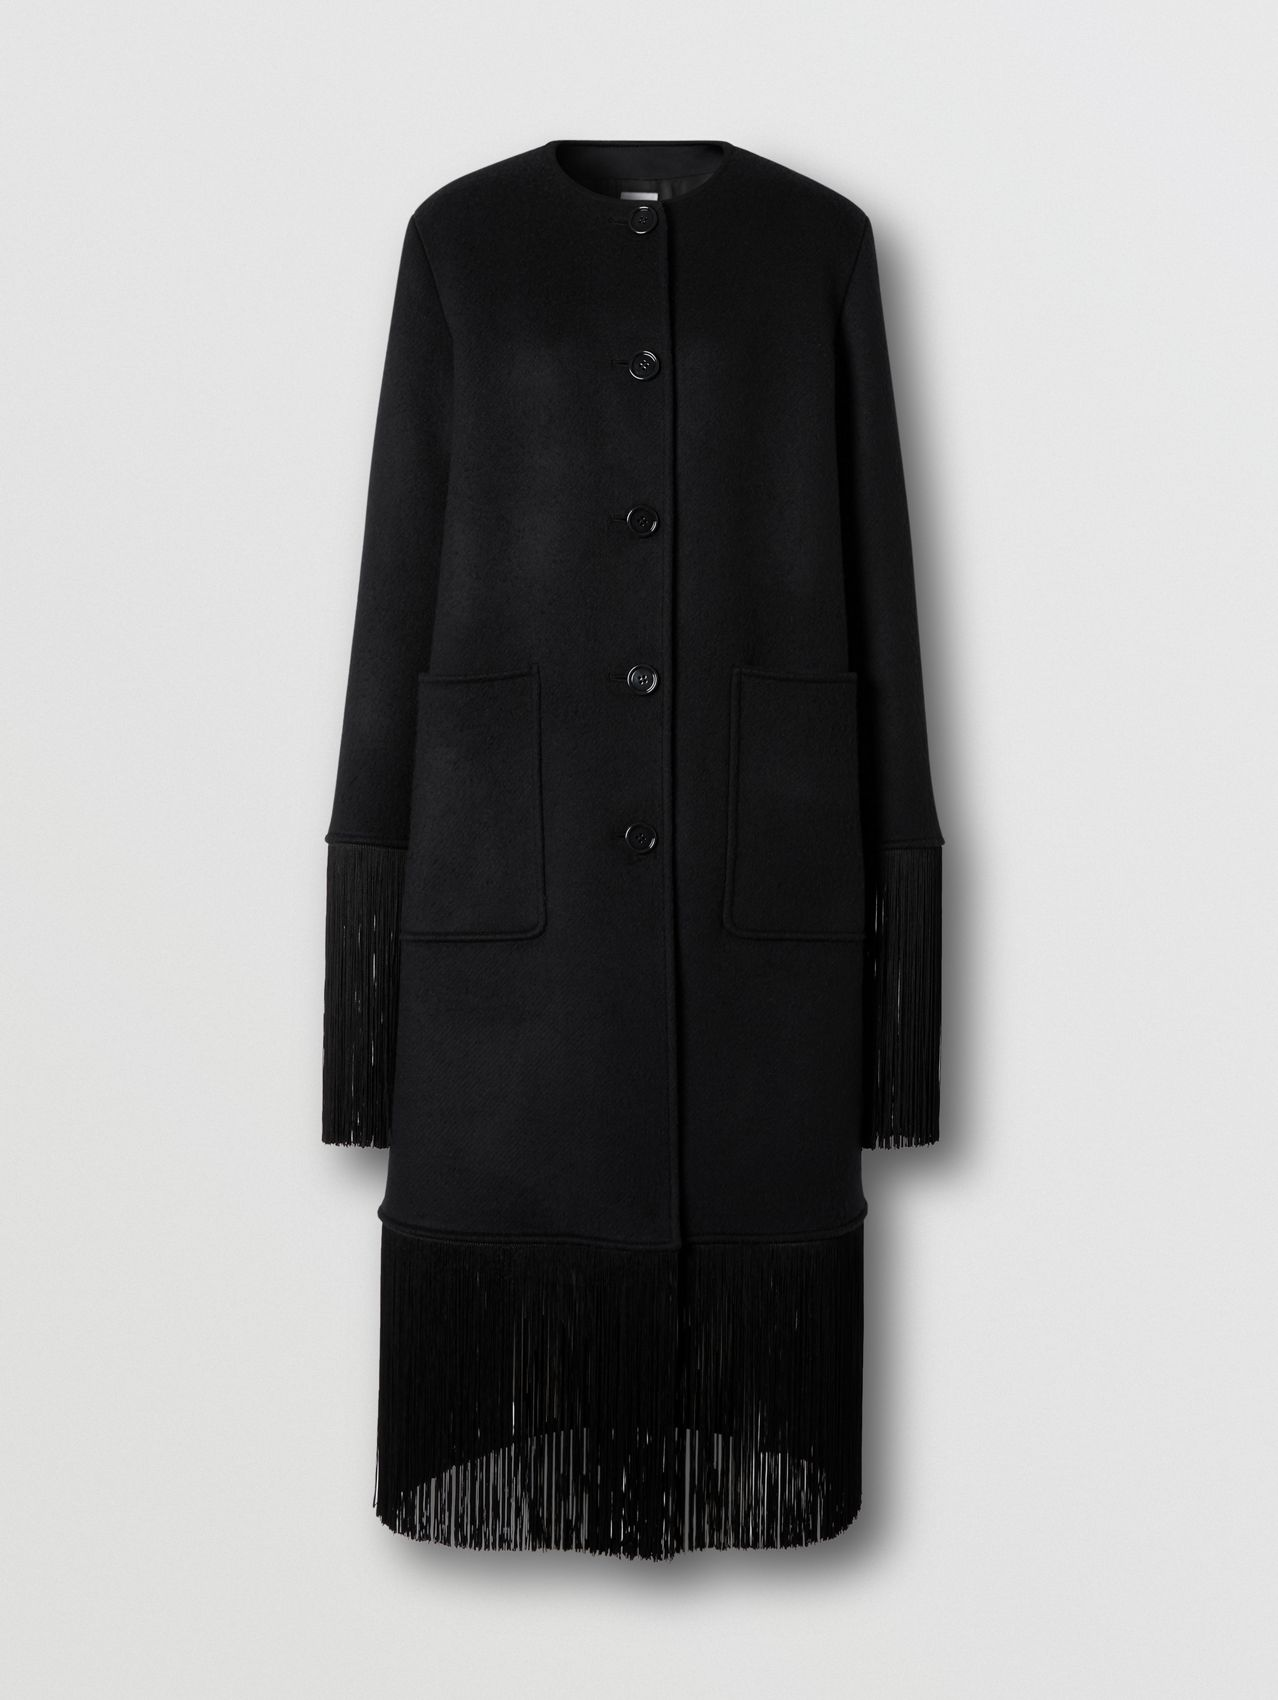 Fringed Double-faced Wool Cashmere Car Coat (Black)